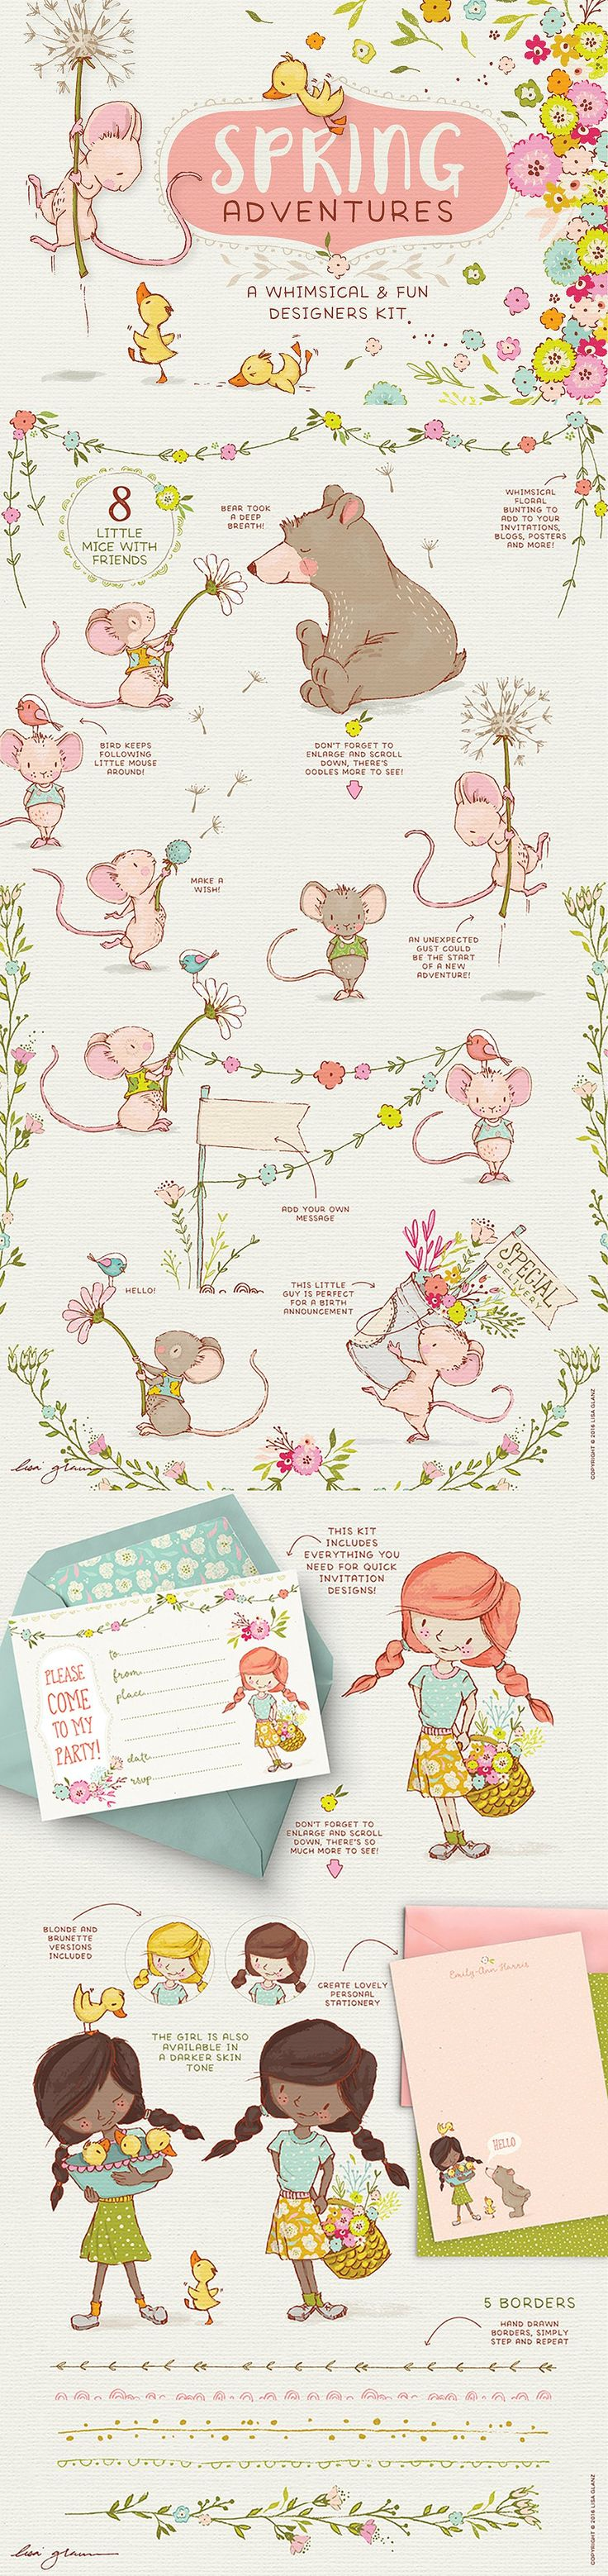 Spring Adventures: Intro 32% Off by Lisa Glanz on @creativemarket